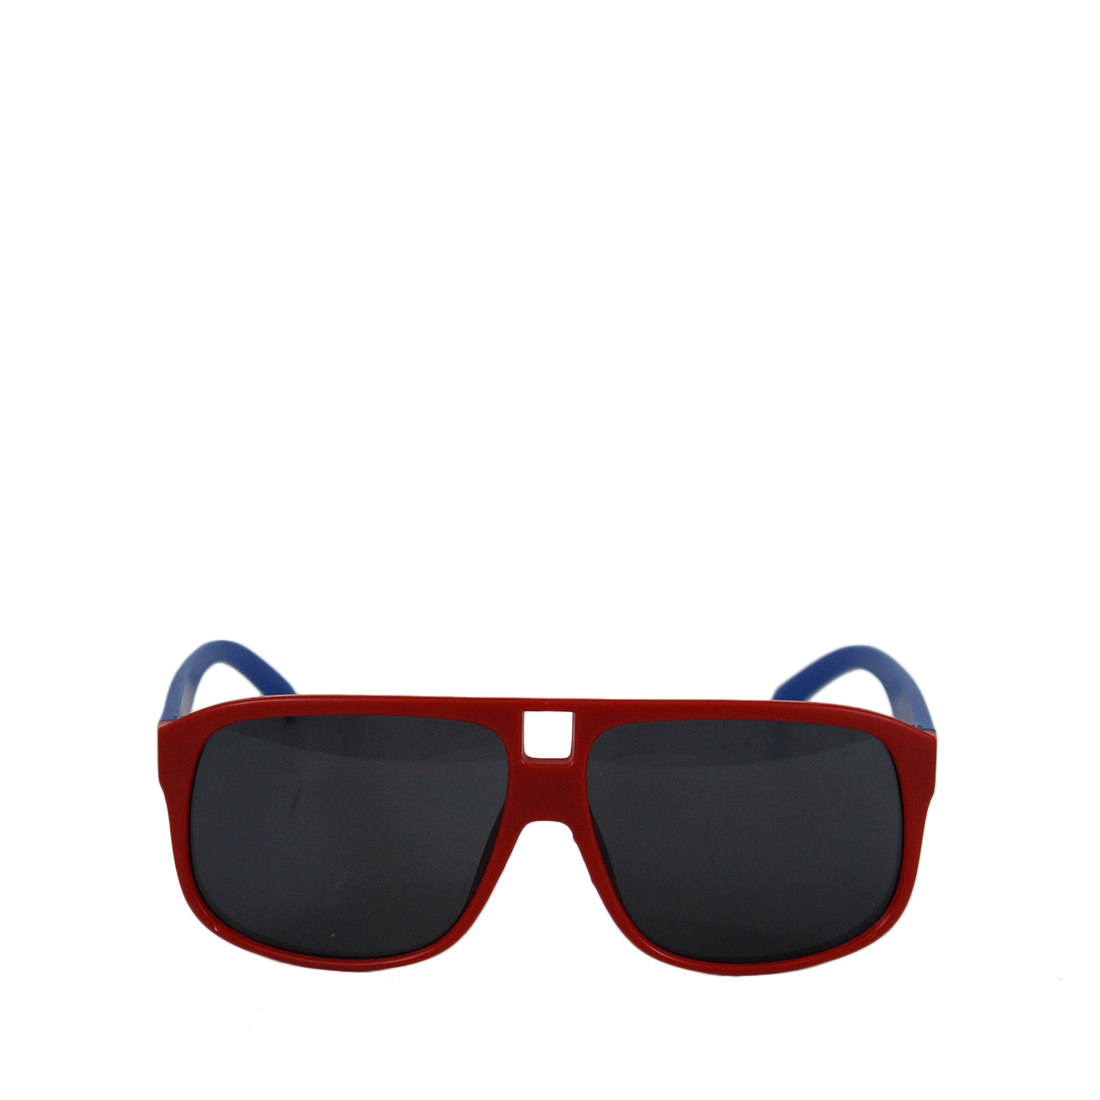 Plastick square sunglasses